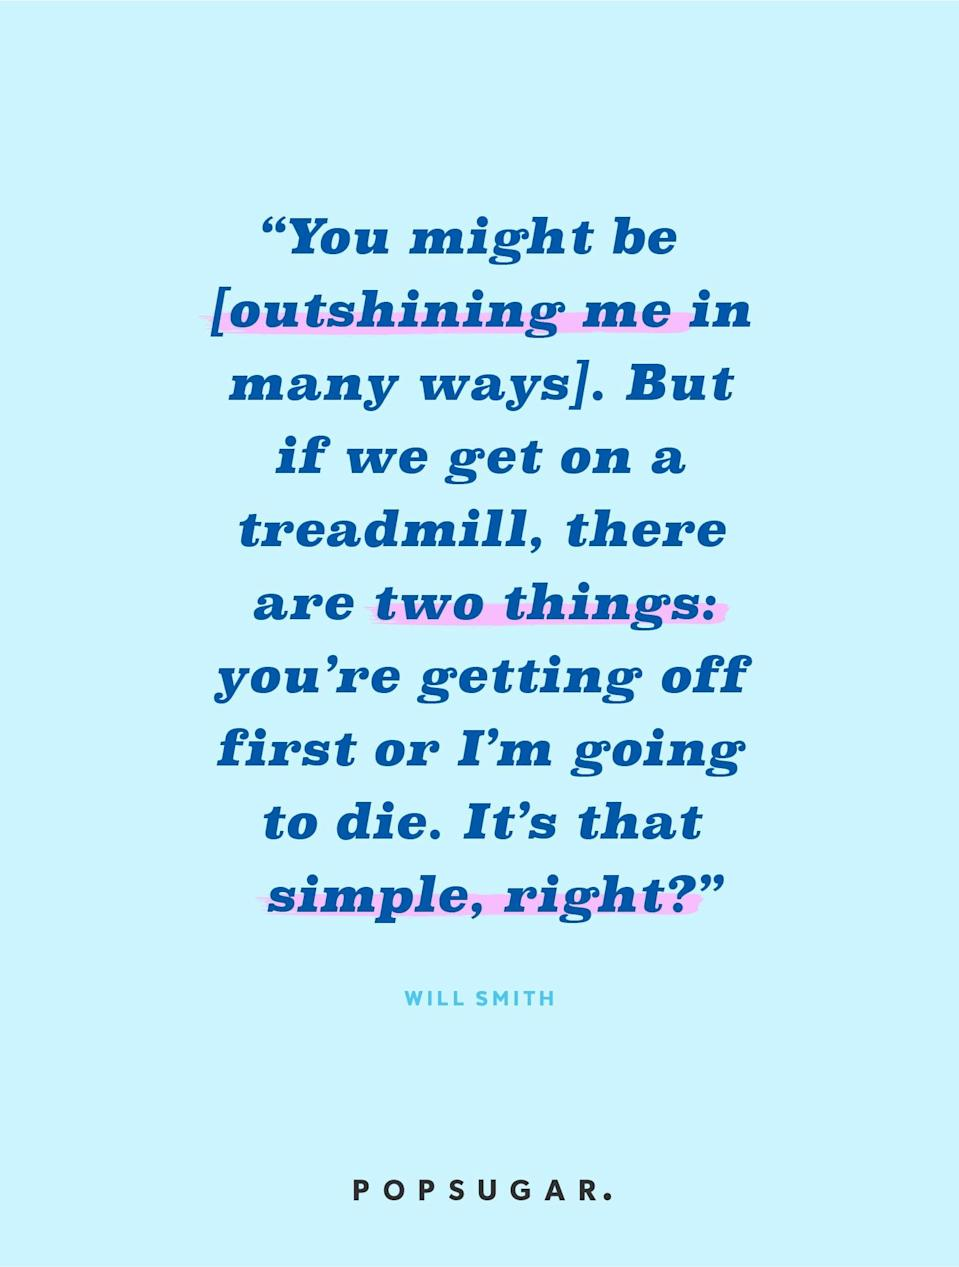 """<p><b>Quote:</b></p> <p>""""You might have more talent than me, you might be smarter than me, you might be sexier than me, you might be all of those things you got it on me in nine categories. But if we get on the treadmill together, there are two things: You're getting off first, or I'm going to die. It's really that simple, right?""""</p> <p><strong>Lesson to learn:</strong></p> <p>Someone else may be better than you in some ways, perhaps because they are naturally gifted, but perseverance and hard work can always win out over talent.</p>"""